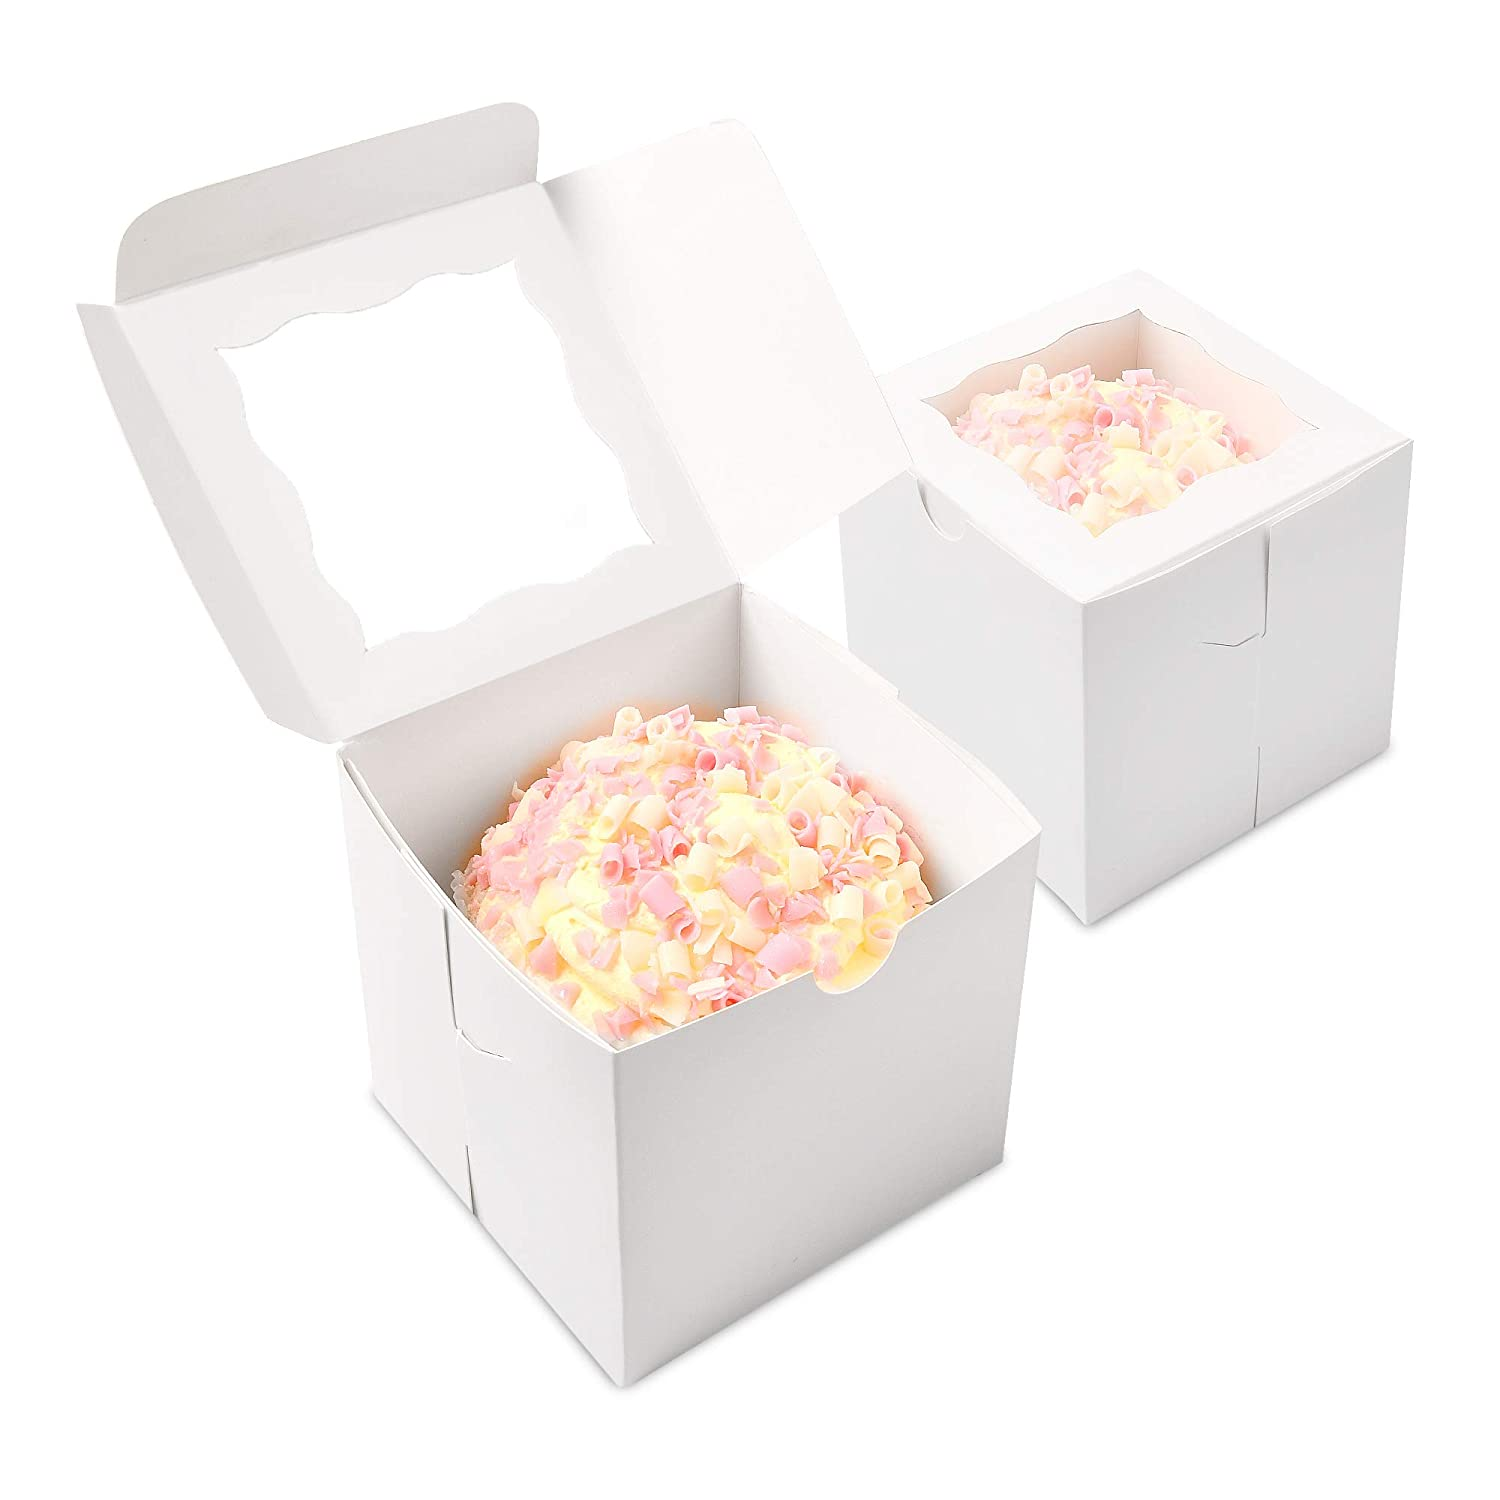 Cookies Candy Surf City Supplies {50-Pack} Brown 4X4X4 Bakery Boxes with Window Pastries Easy to Assemble Soap. Brownies Cheesecake Cupcakes Great for Cakes Essential Oil Pies Donuts